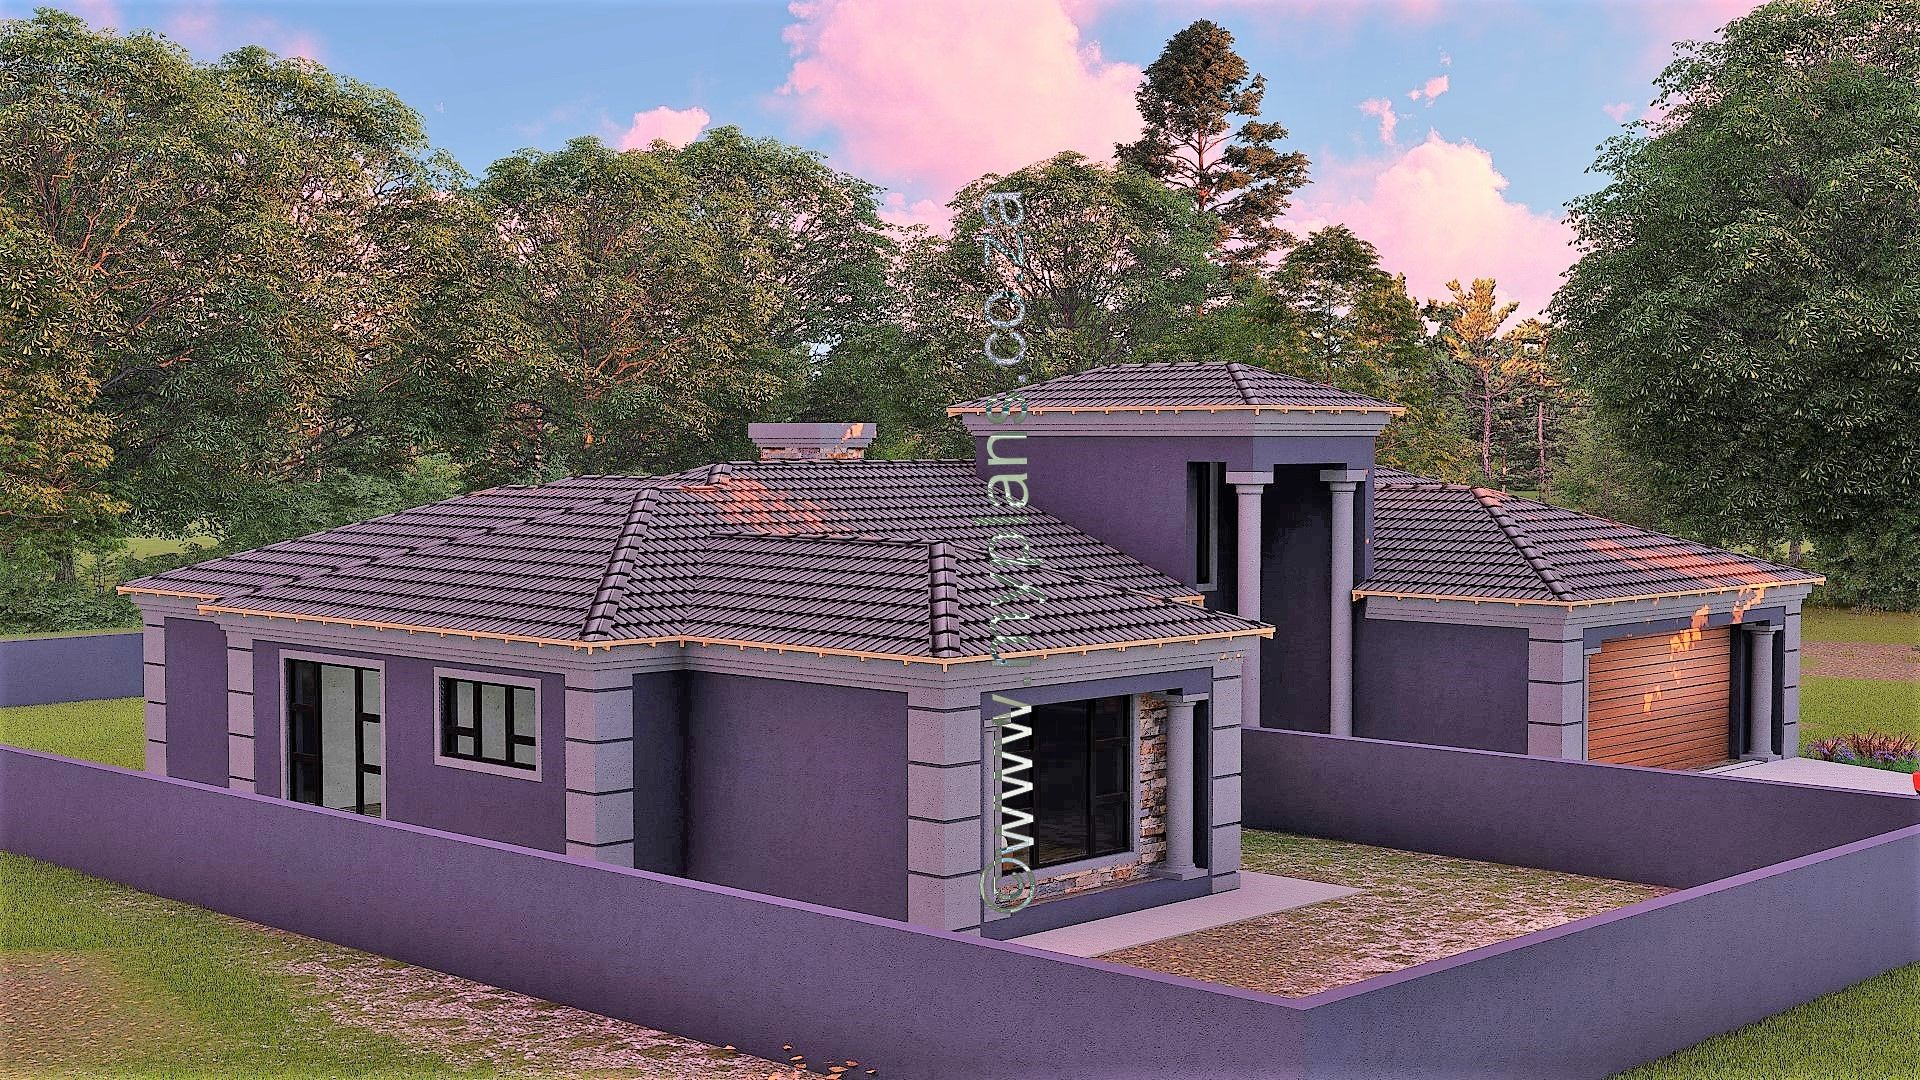 4 Bedroom House Plan Mlb 72s In 2020 4 Bedroom House Plans Bedroom House Plans Tuscan House Plans